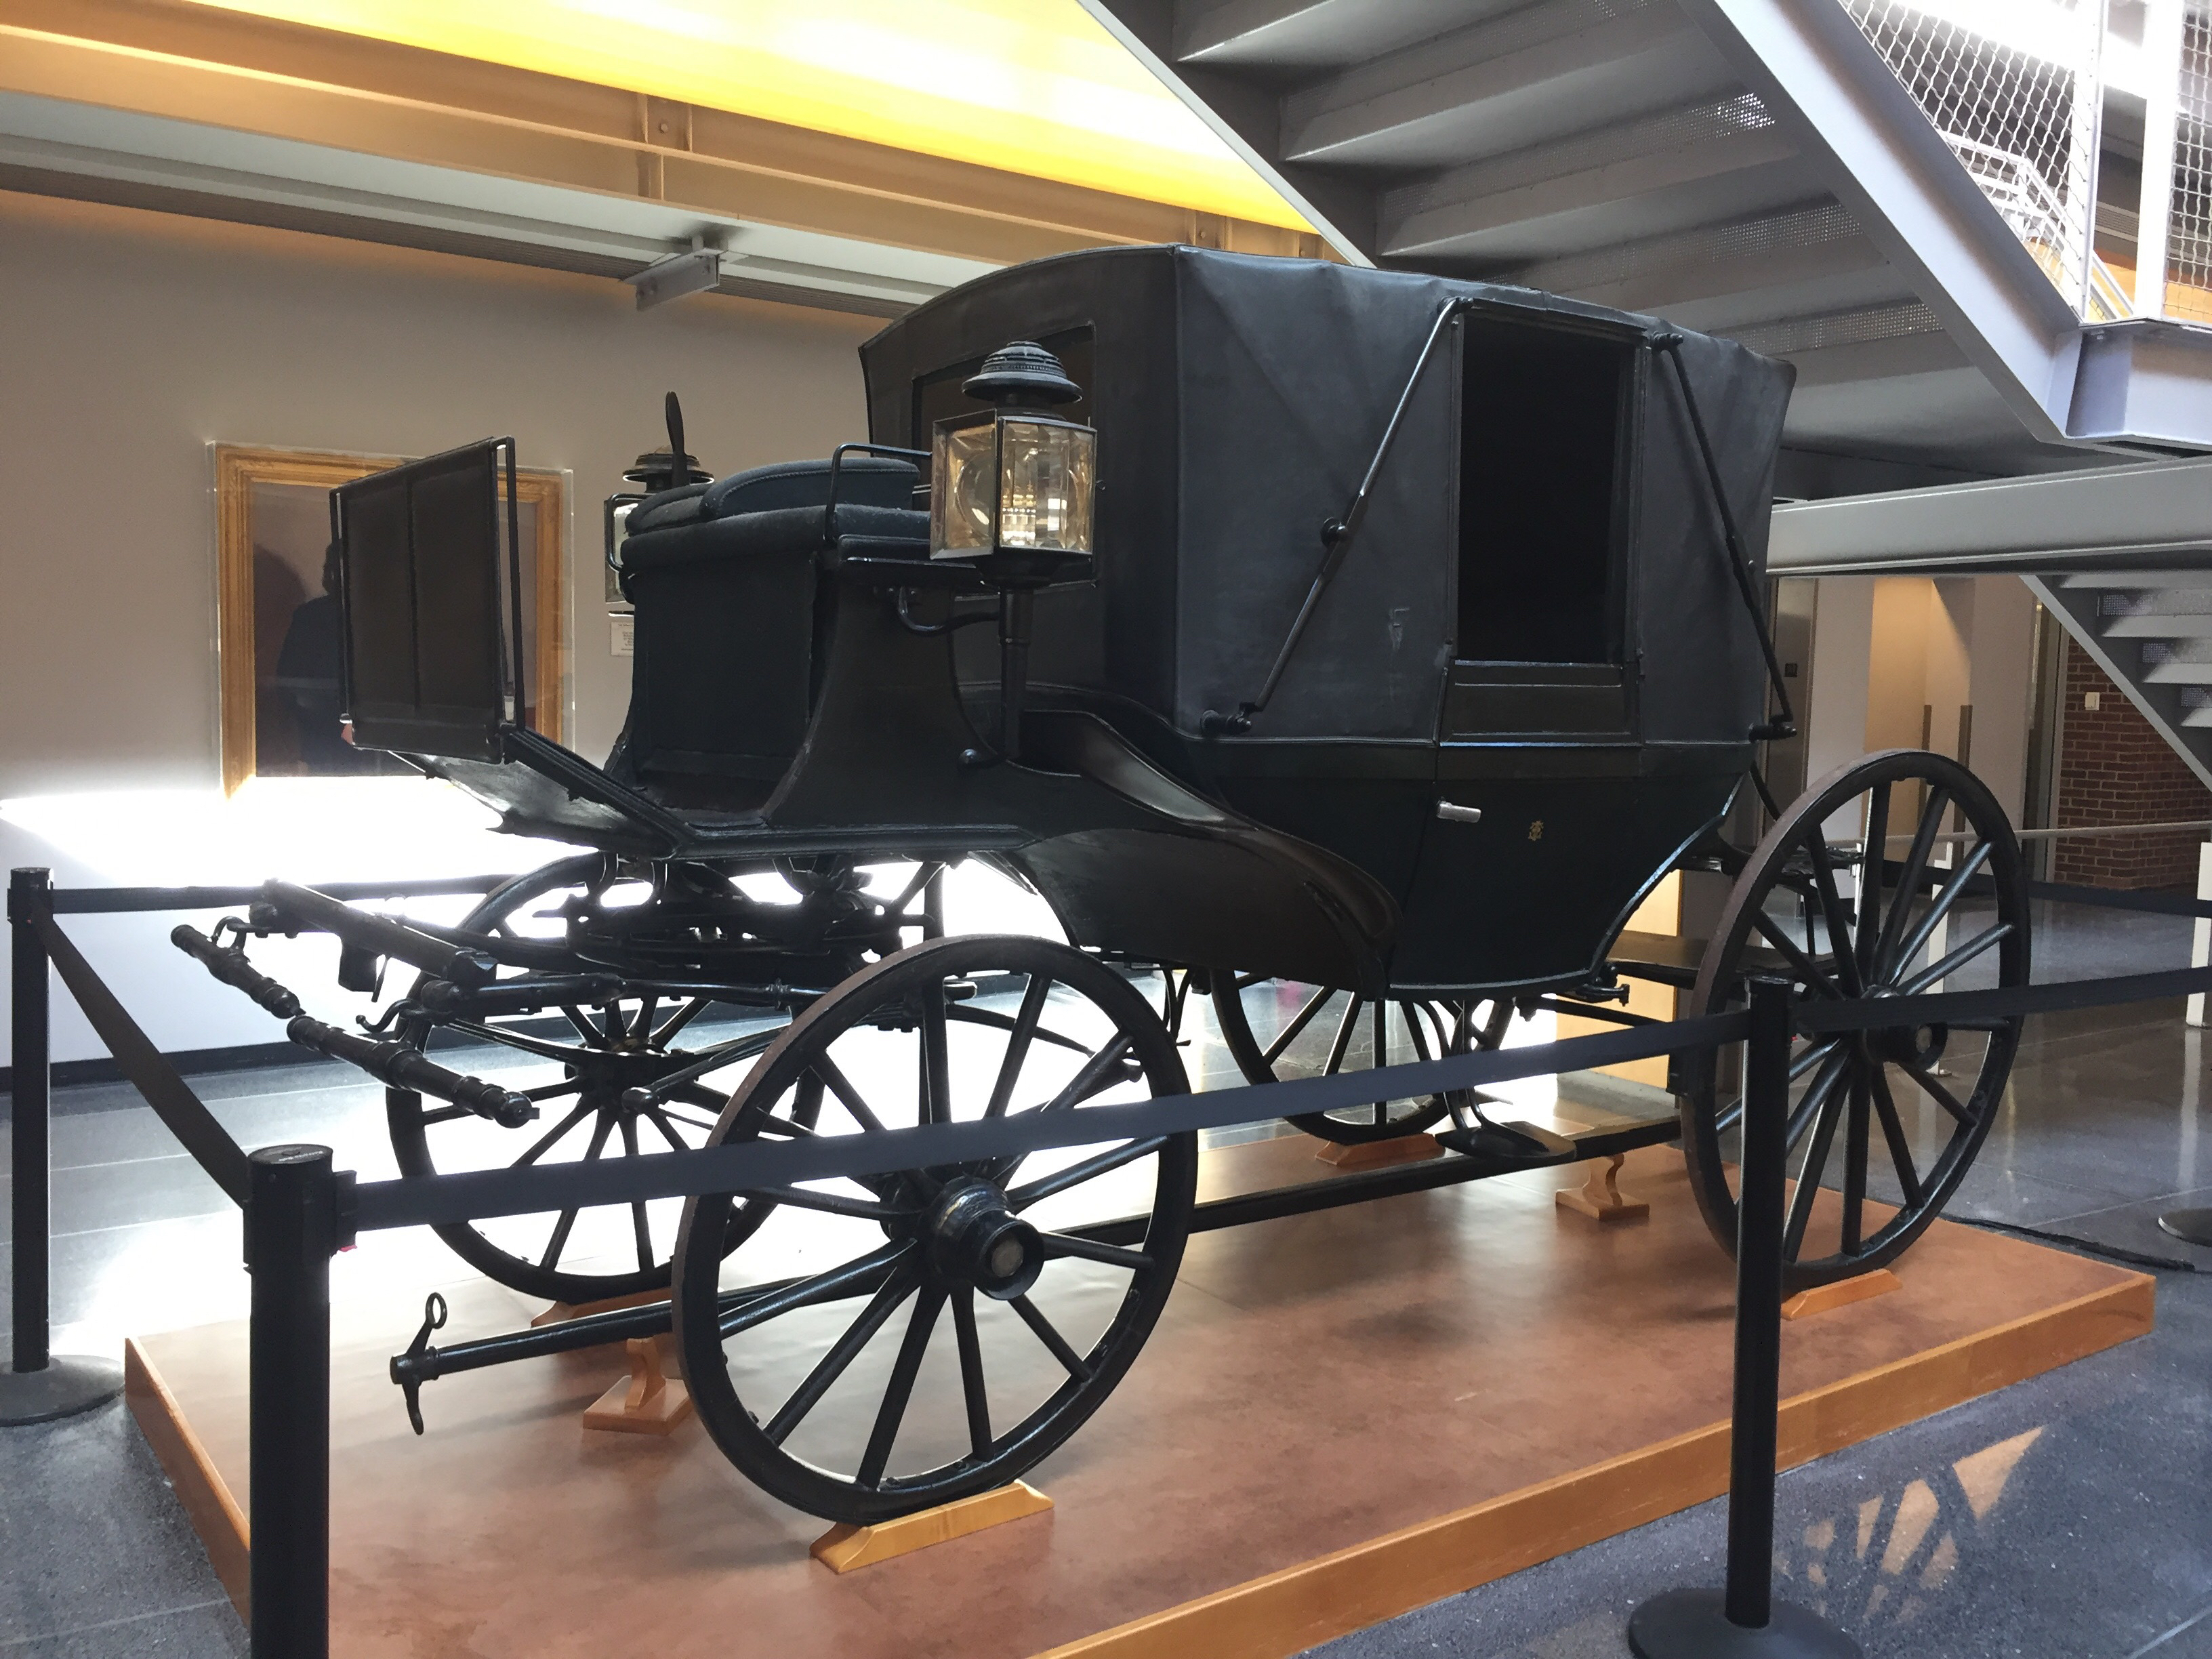 Thomas W. Evans's Landau Carriage, ca. 1860, Labourdette (Paris), #1912.0005.0218, University of Pennsylvania. Thomas W. Evans Collection.